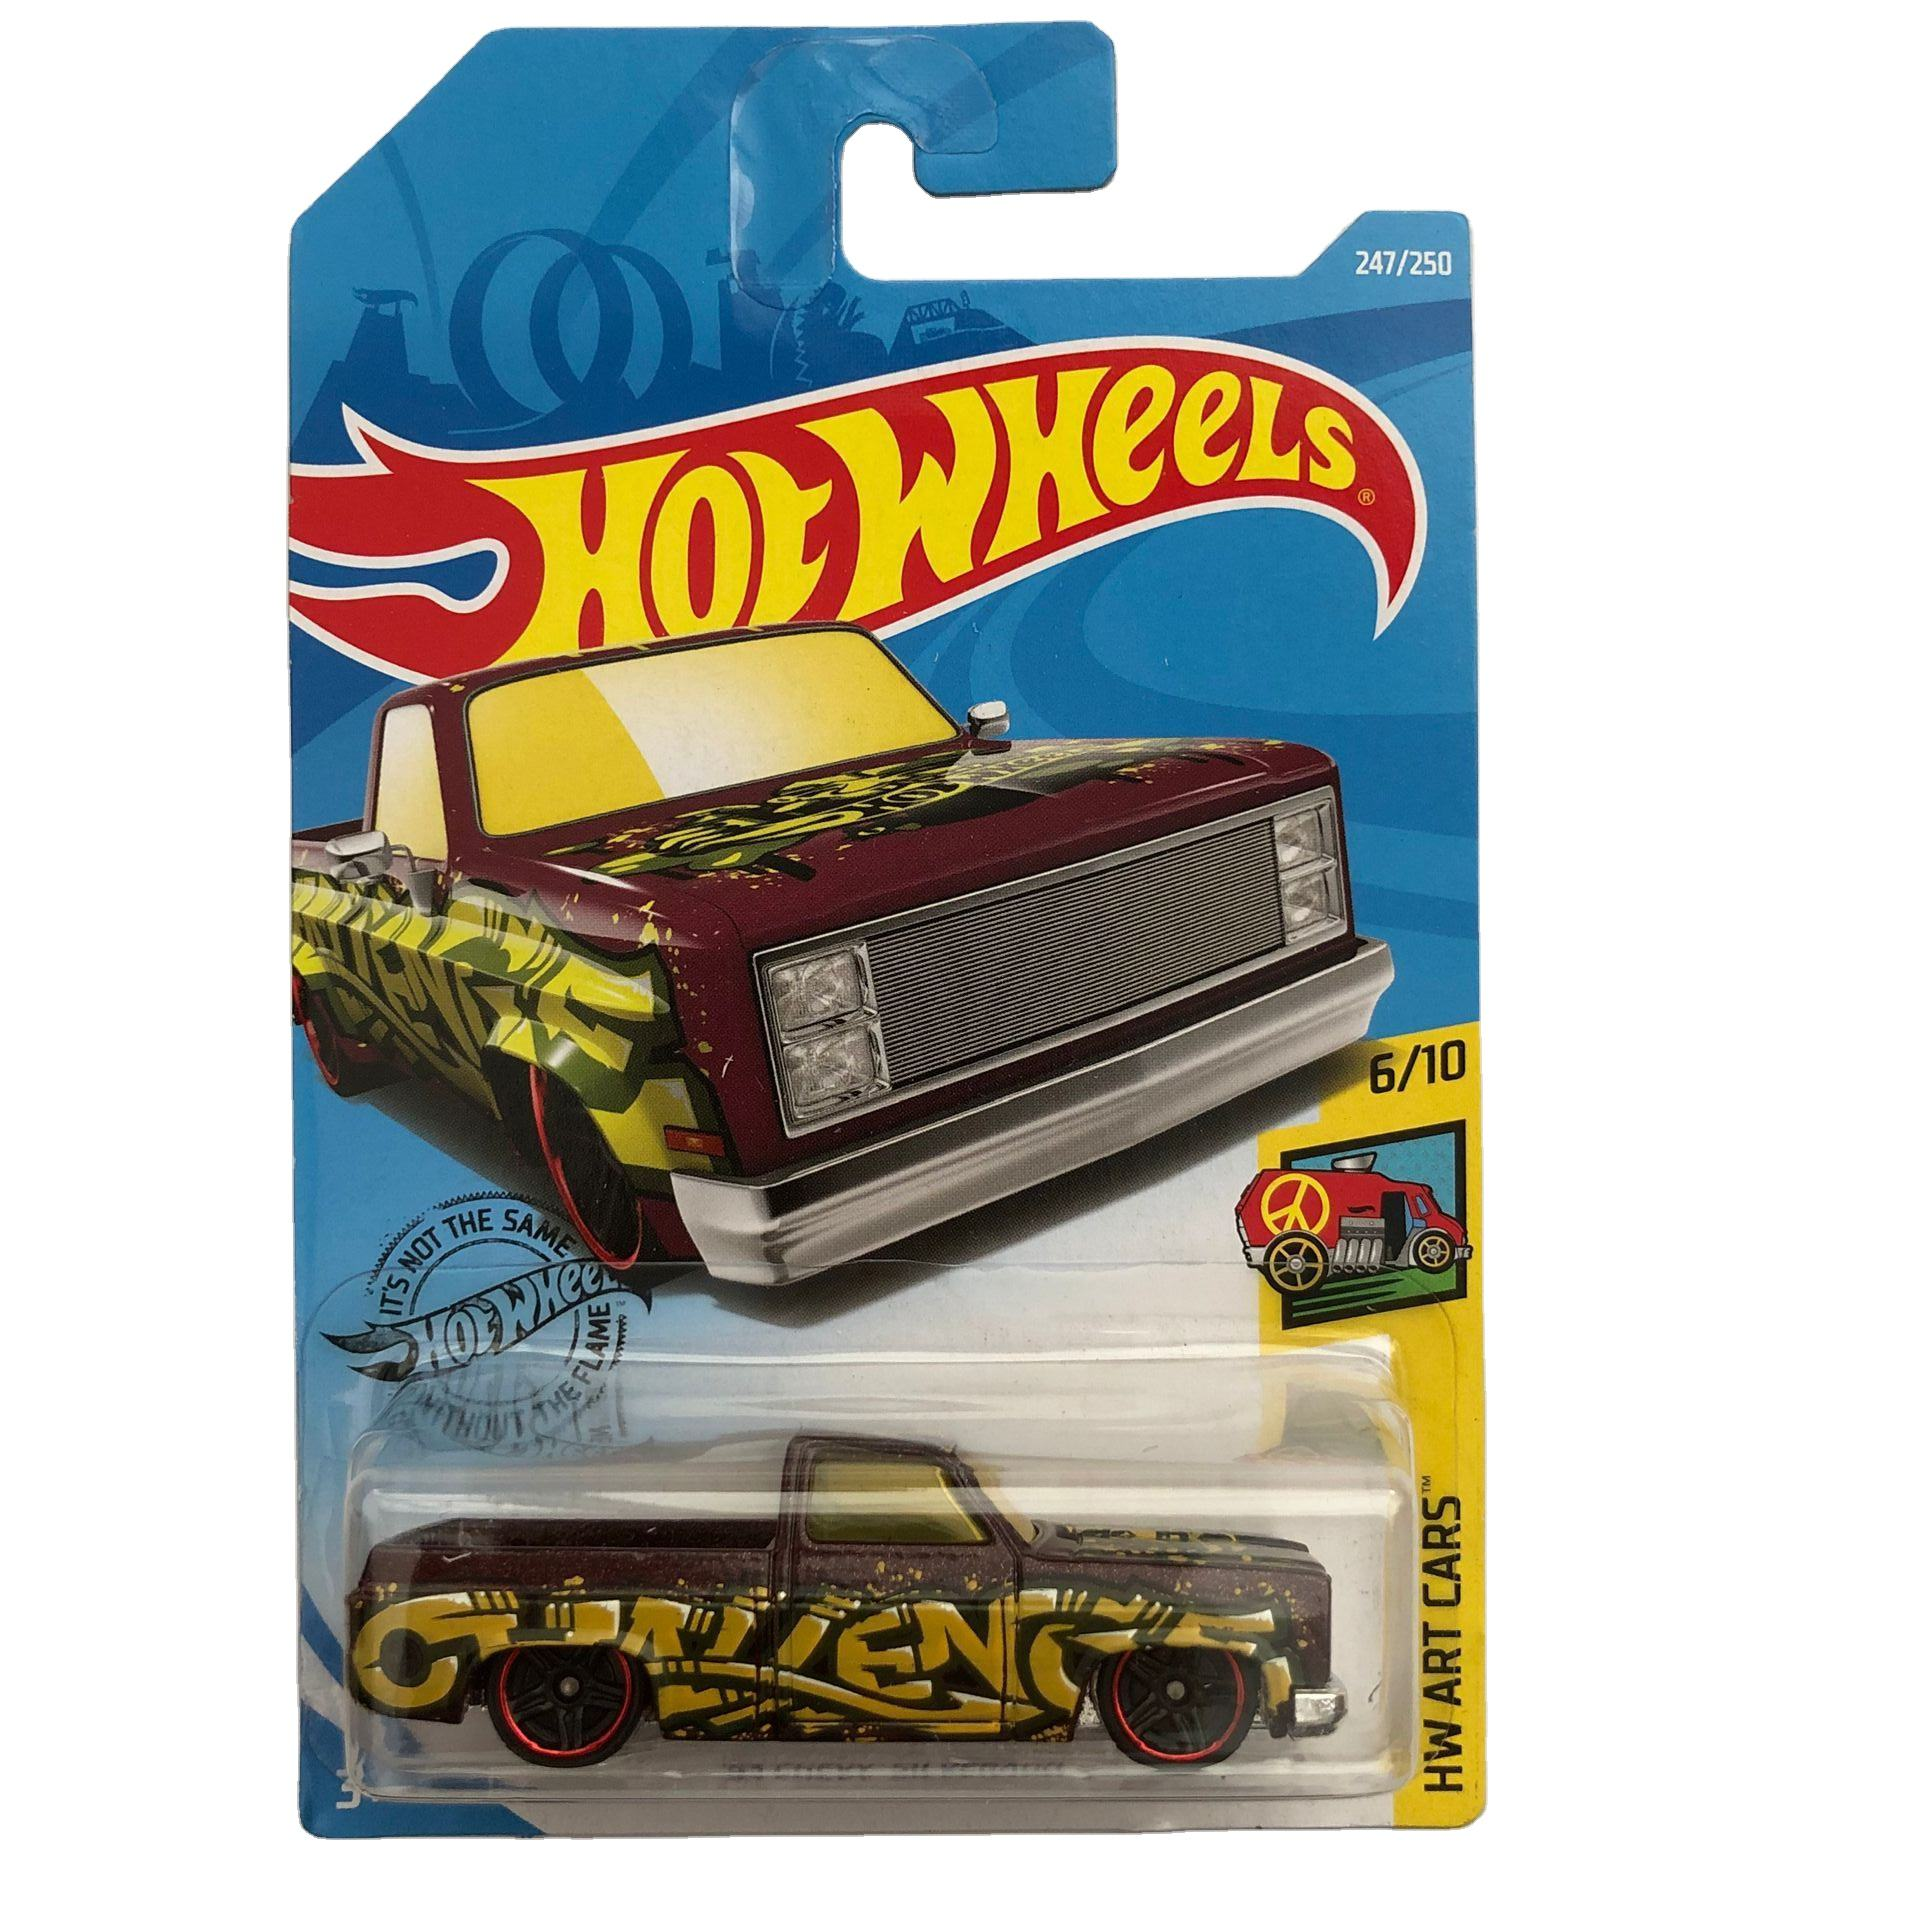 1:64 Hot Wheel Limited Collectors Edition Alloy Car Toy